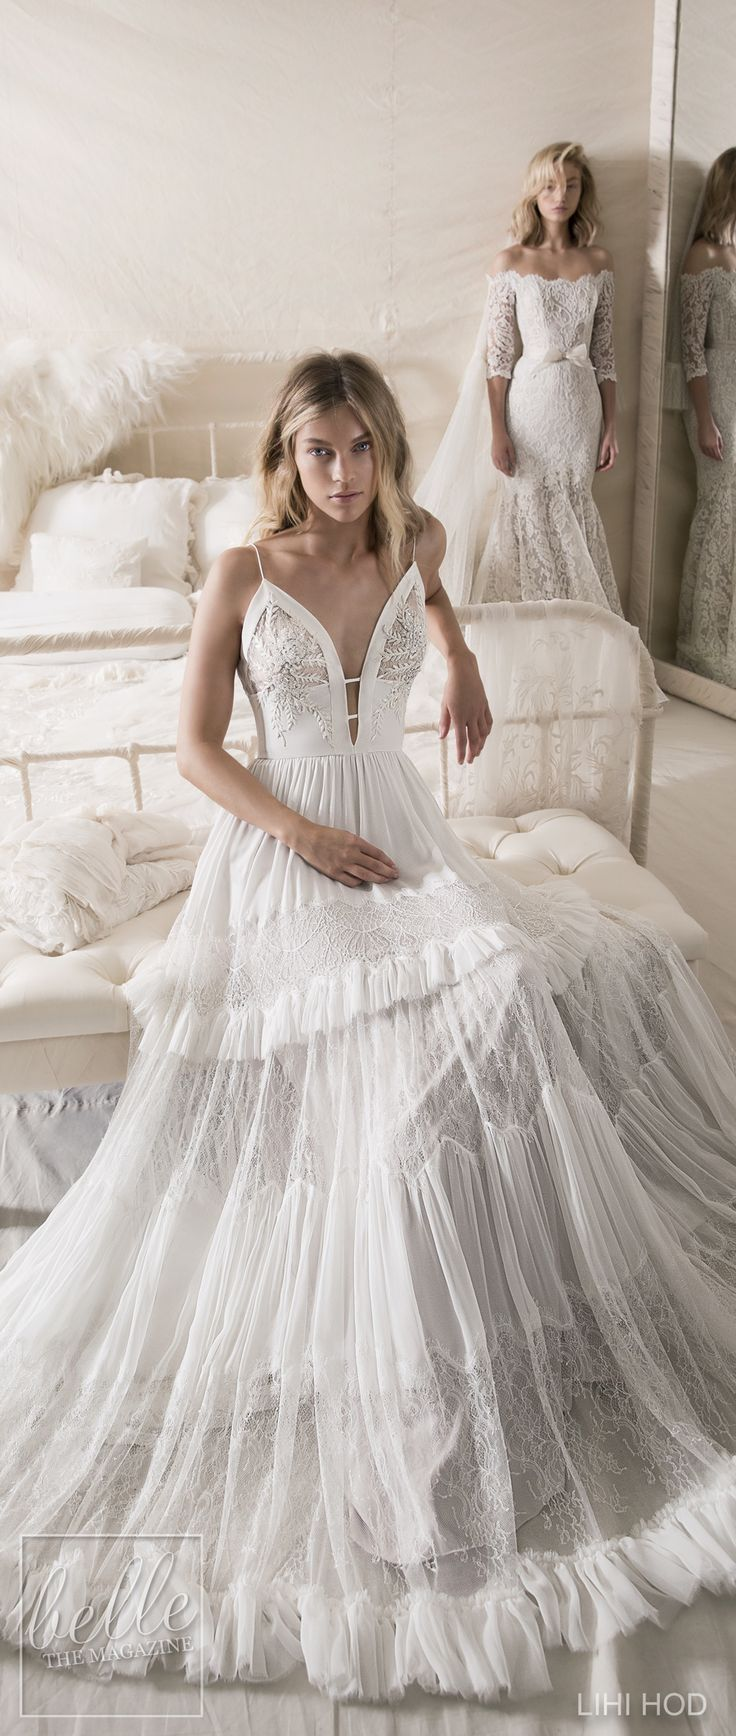 Wedding Dresses by Lihi Hod-Fall-2018 Couture Bridal Collection #WddingDress